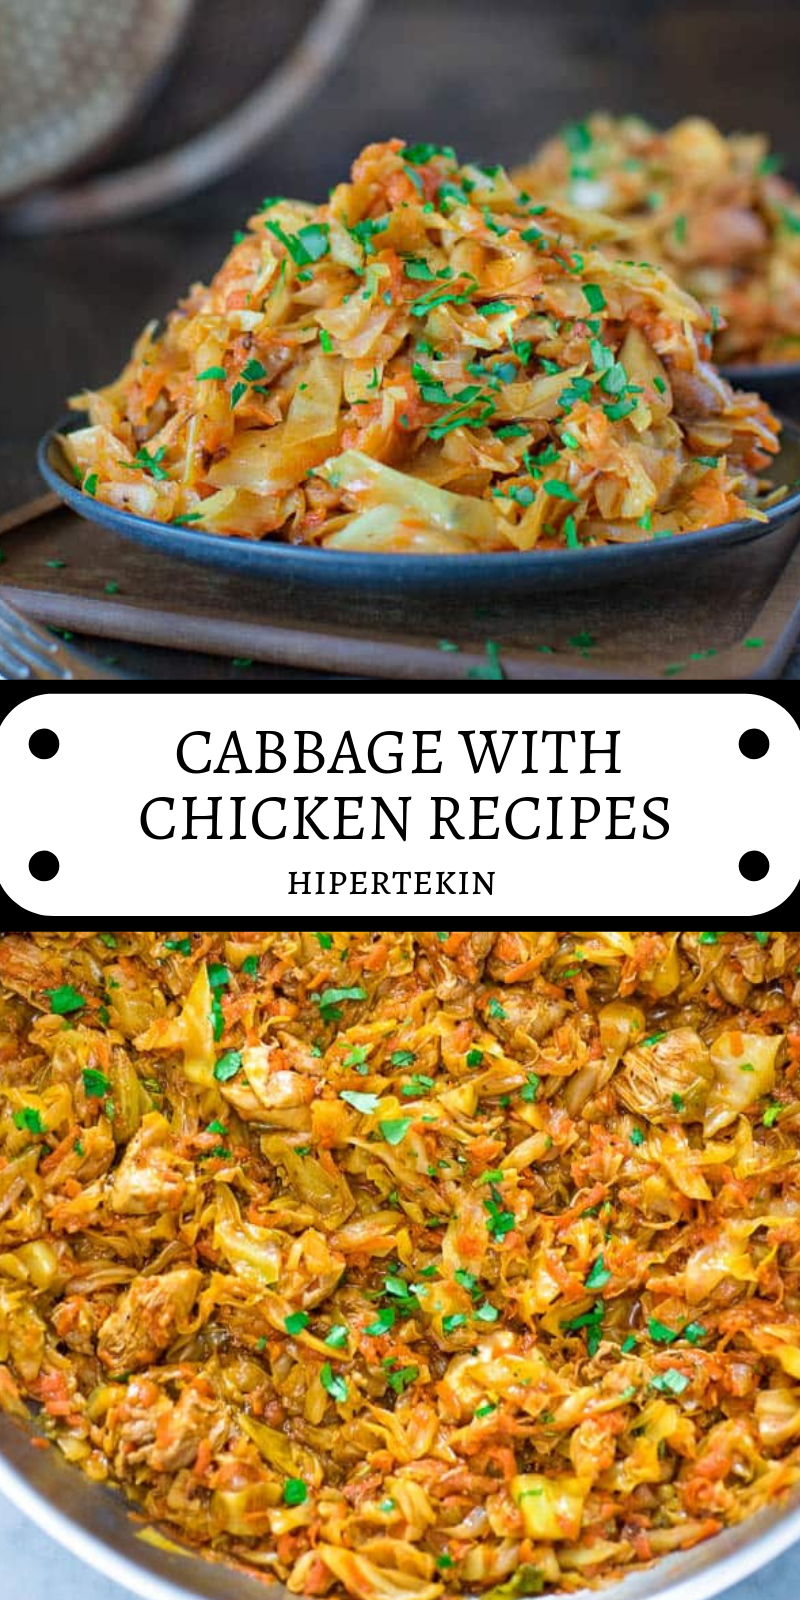 CABBAGE WITH CHICKEN RECIPES images